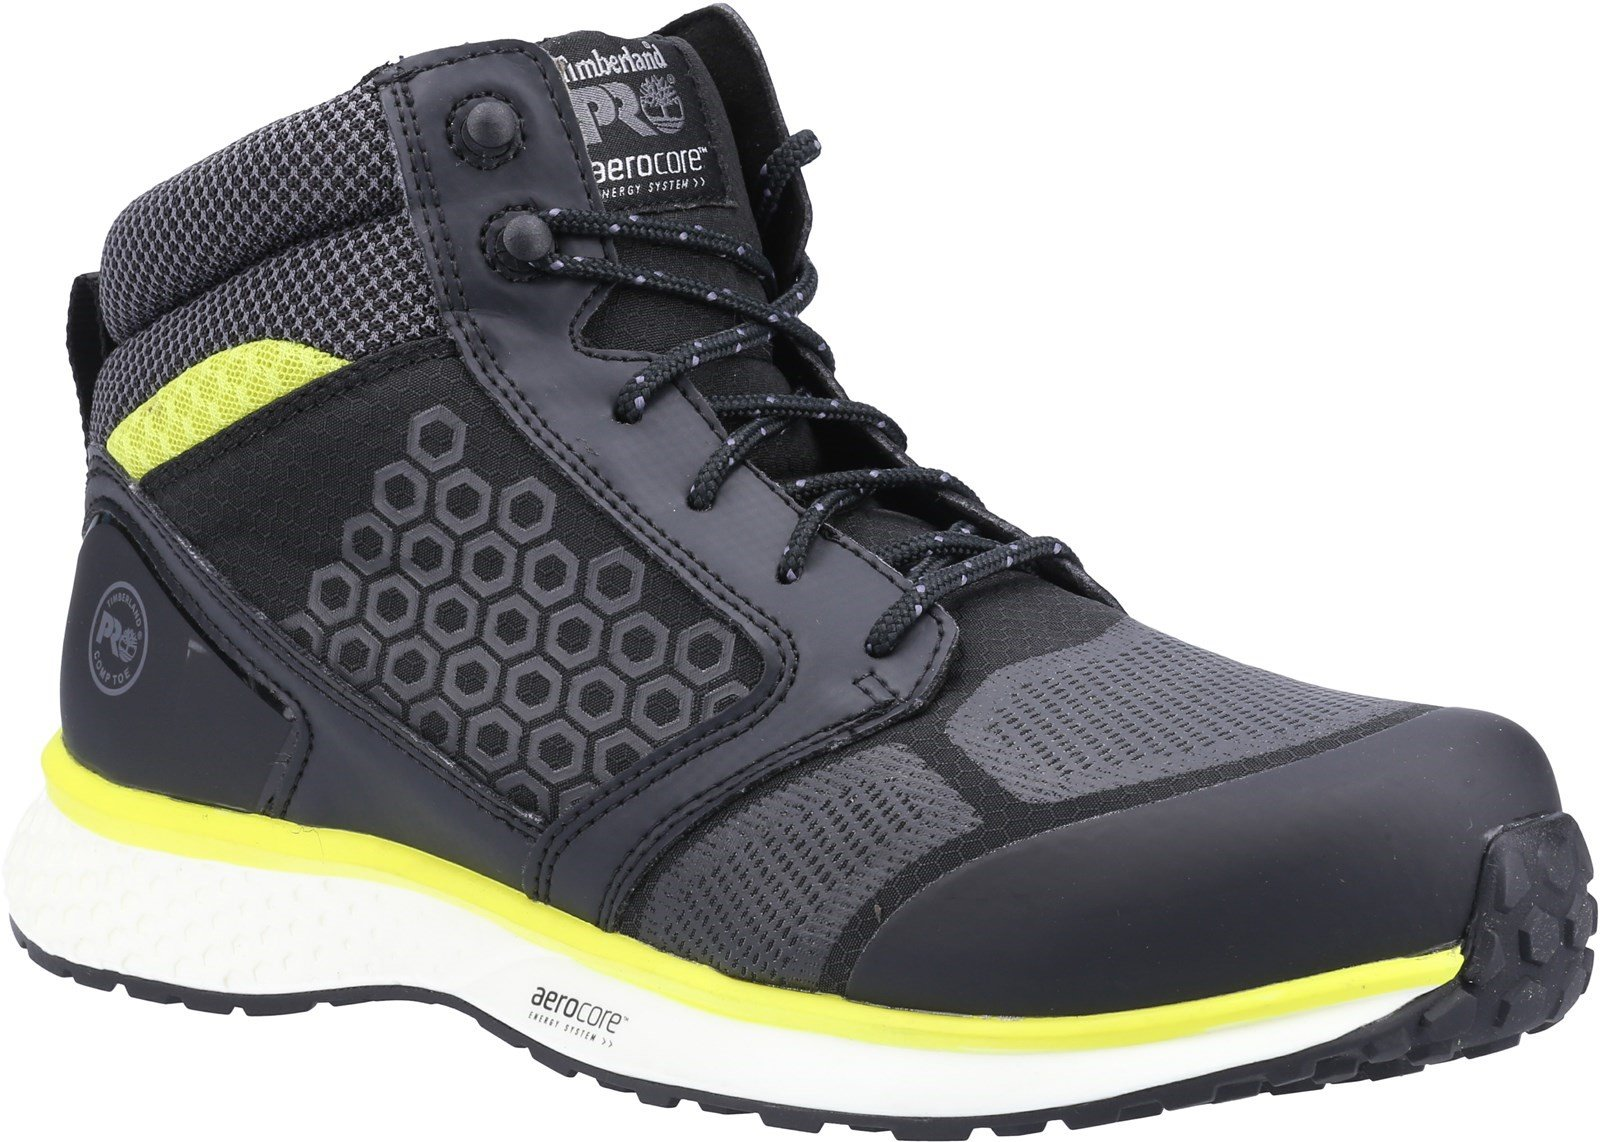 Timberland Pro Unisex Reaxion Mid Composite Safety Boot Various Colours - Black/Yellow 6